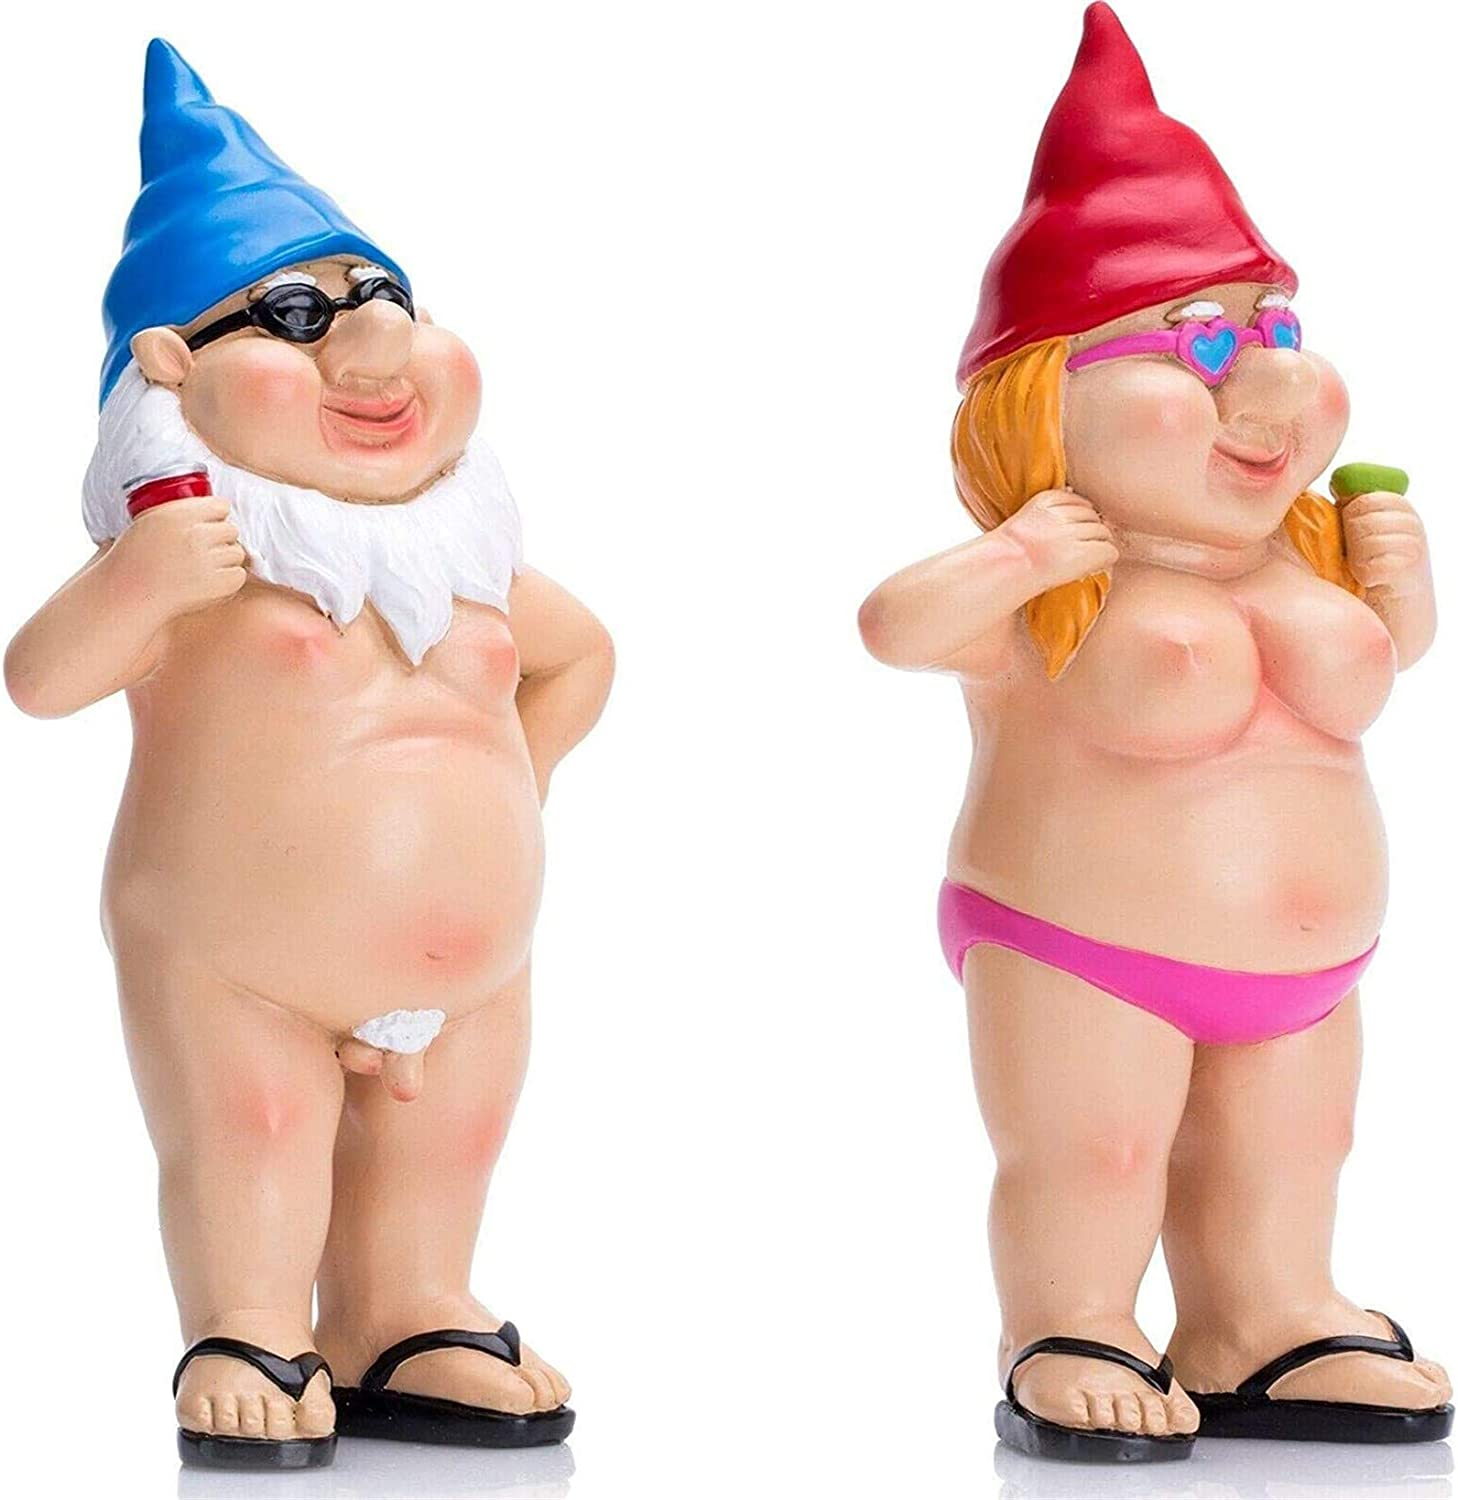 znvwki 2pcs Naked Gnome Statue, Gnomes Garden Decorations Funny, Take Wine Glass and Wear Sunglasses Naked Shape, Resin Figurine Model, Fun and Vibrant, for Christmas Ornaments